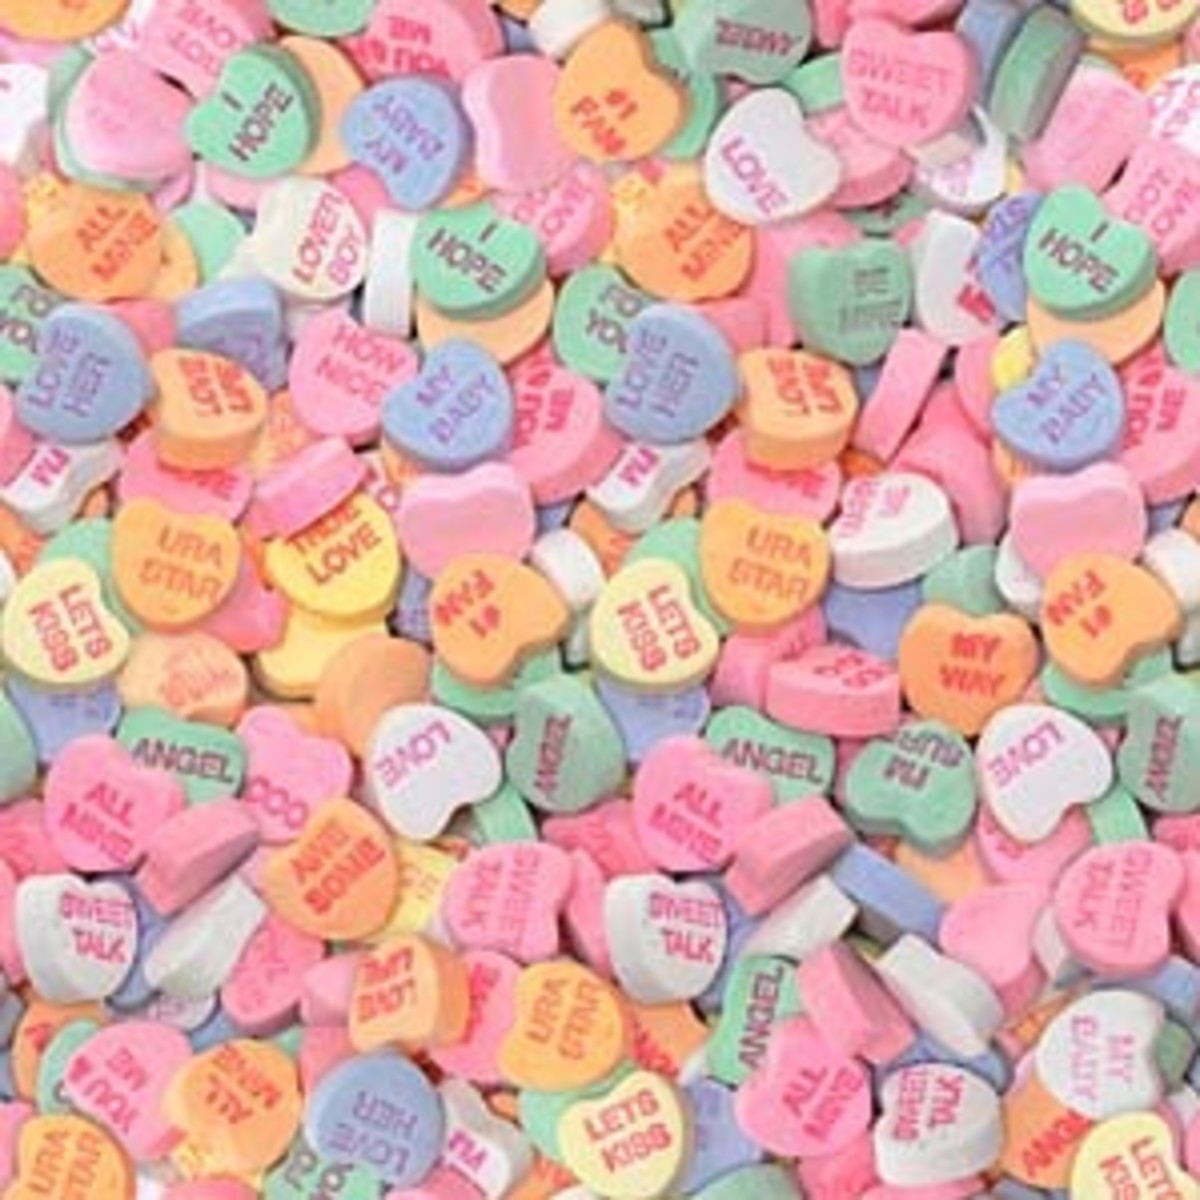 Conversation Heart Poetry - TodaysMama.com